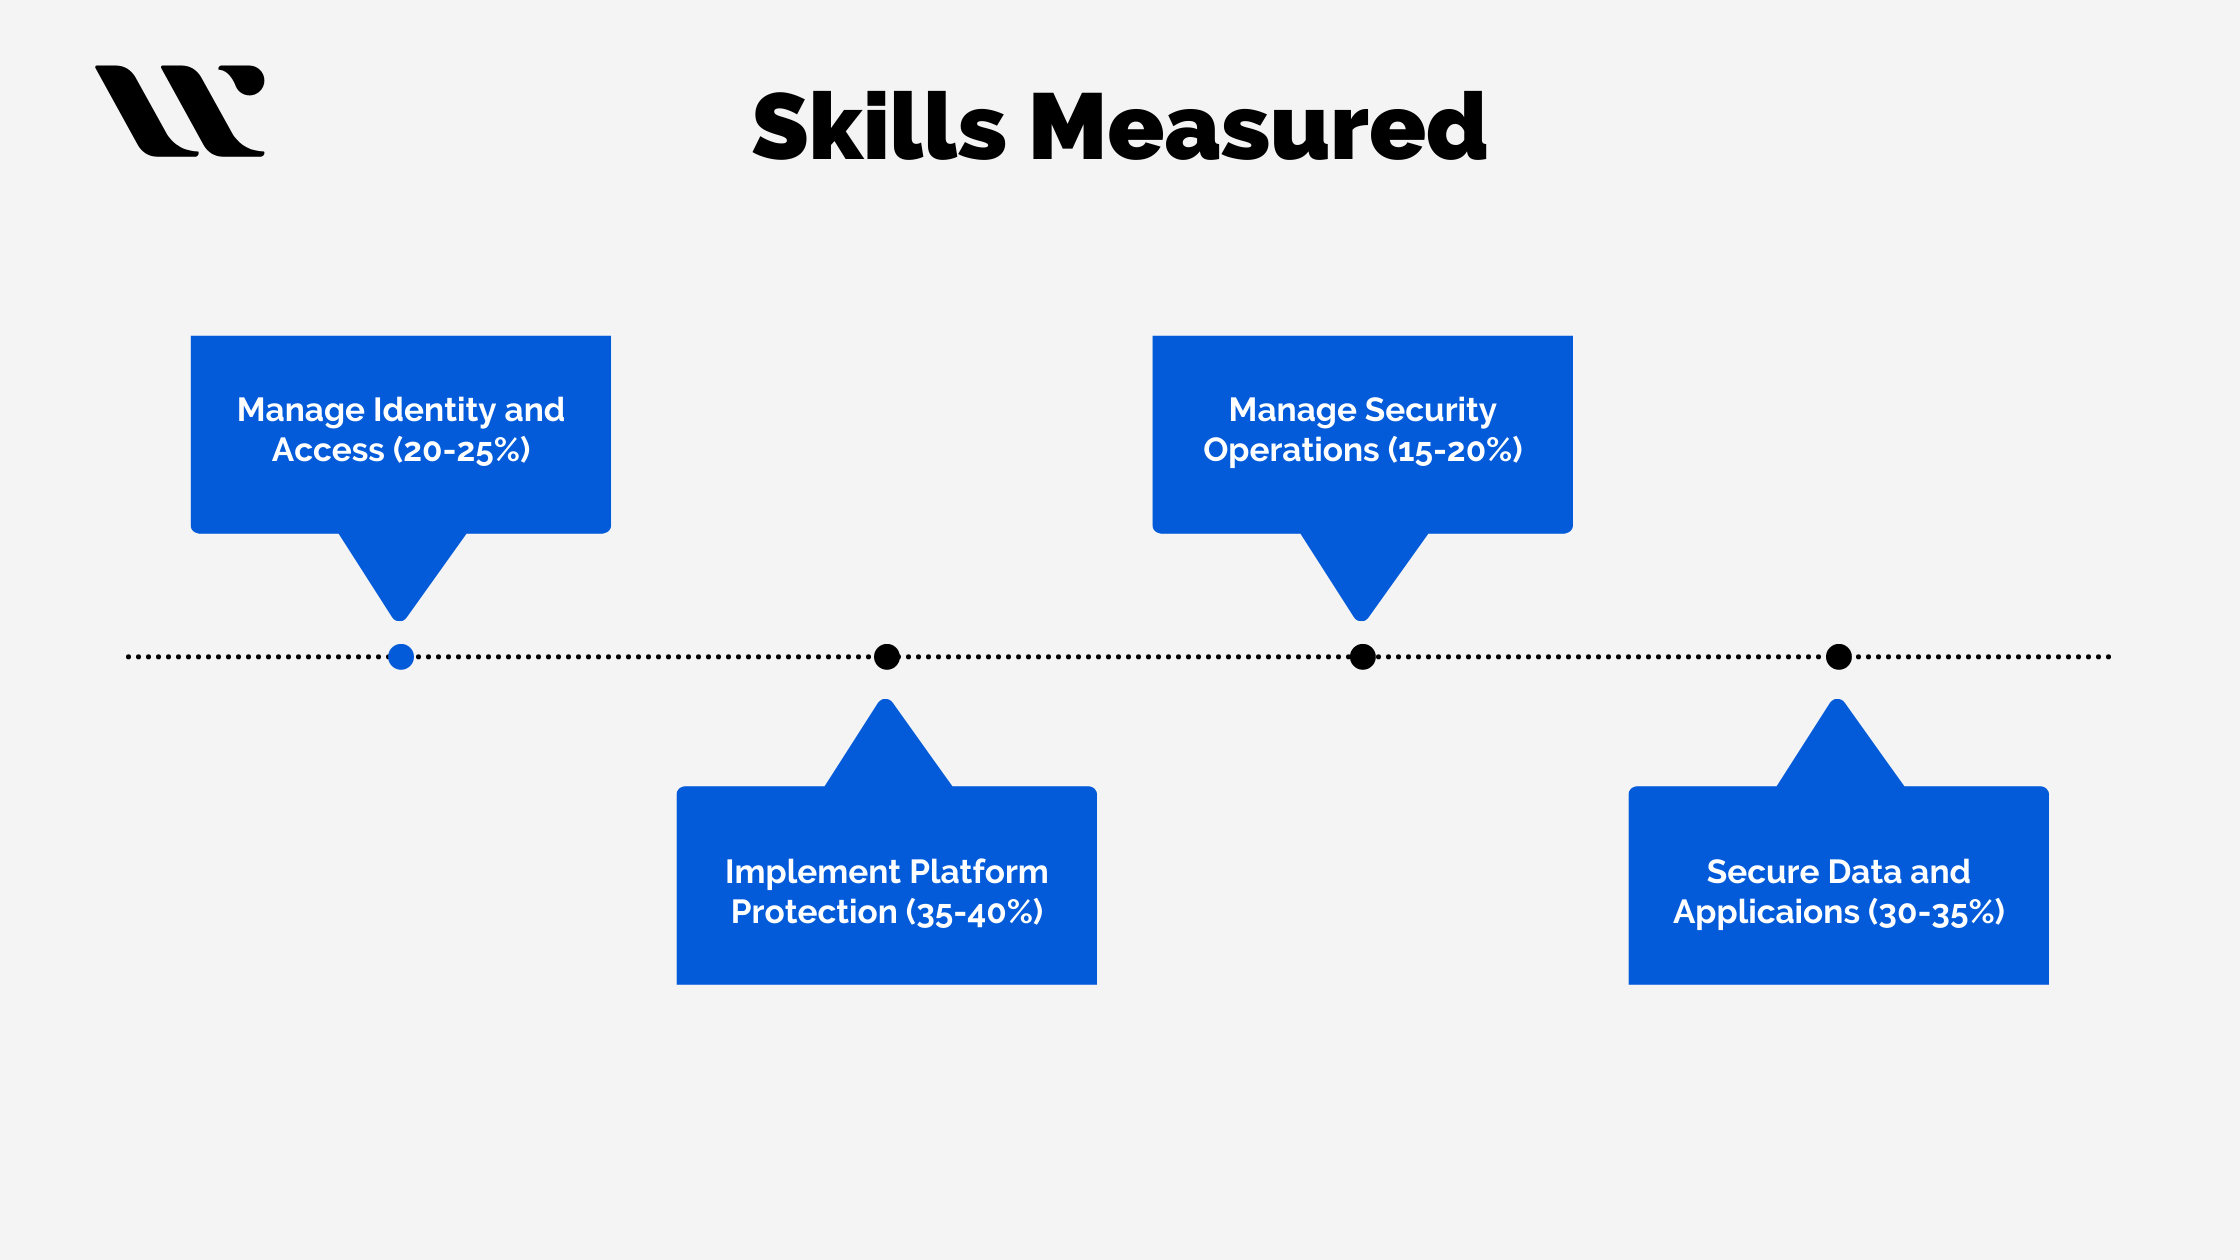 Basic Skills to Acquire for being Azure Security Engineer